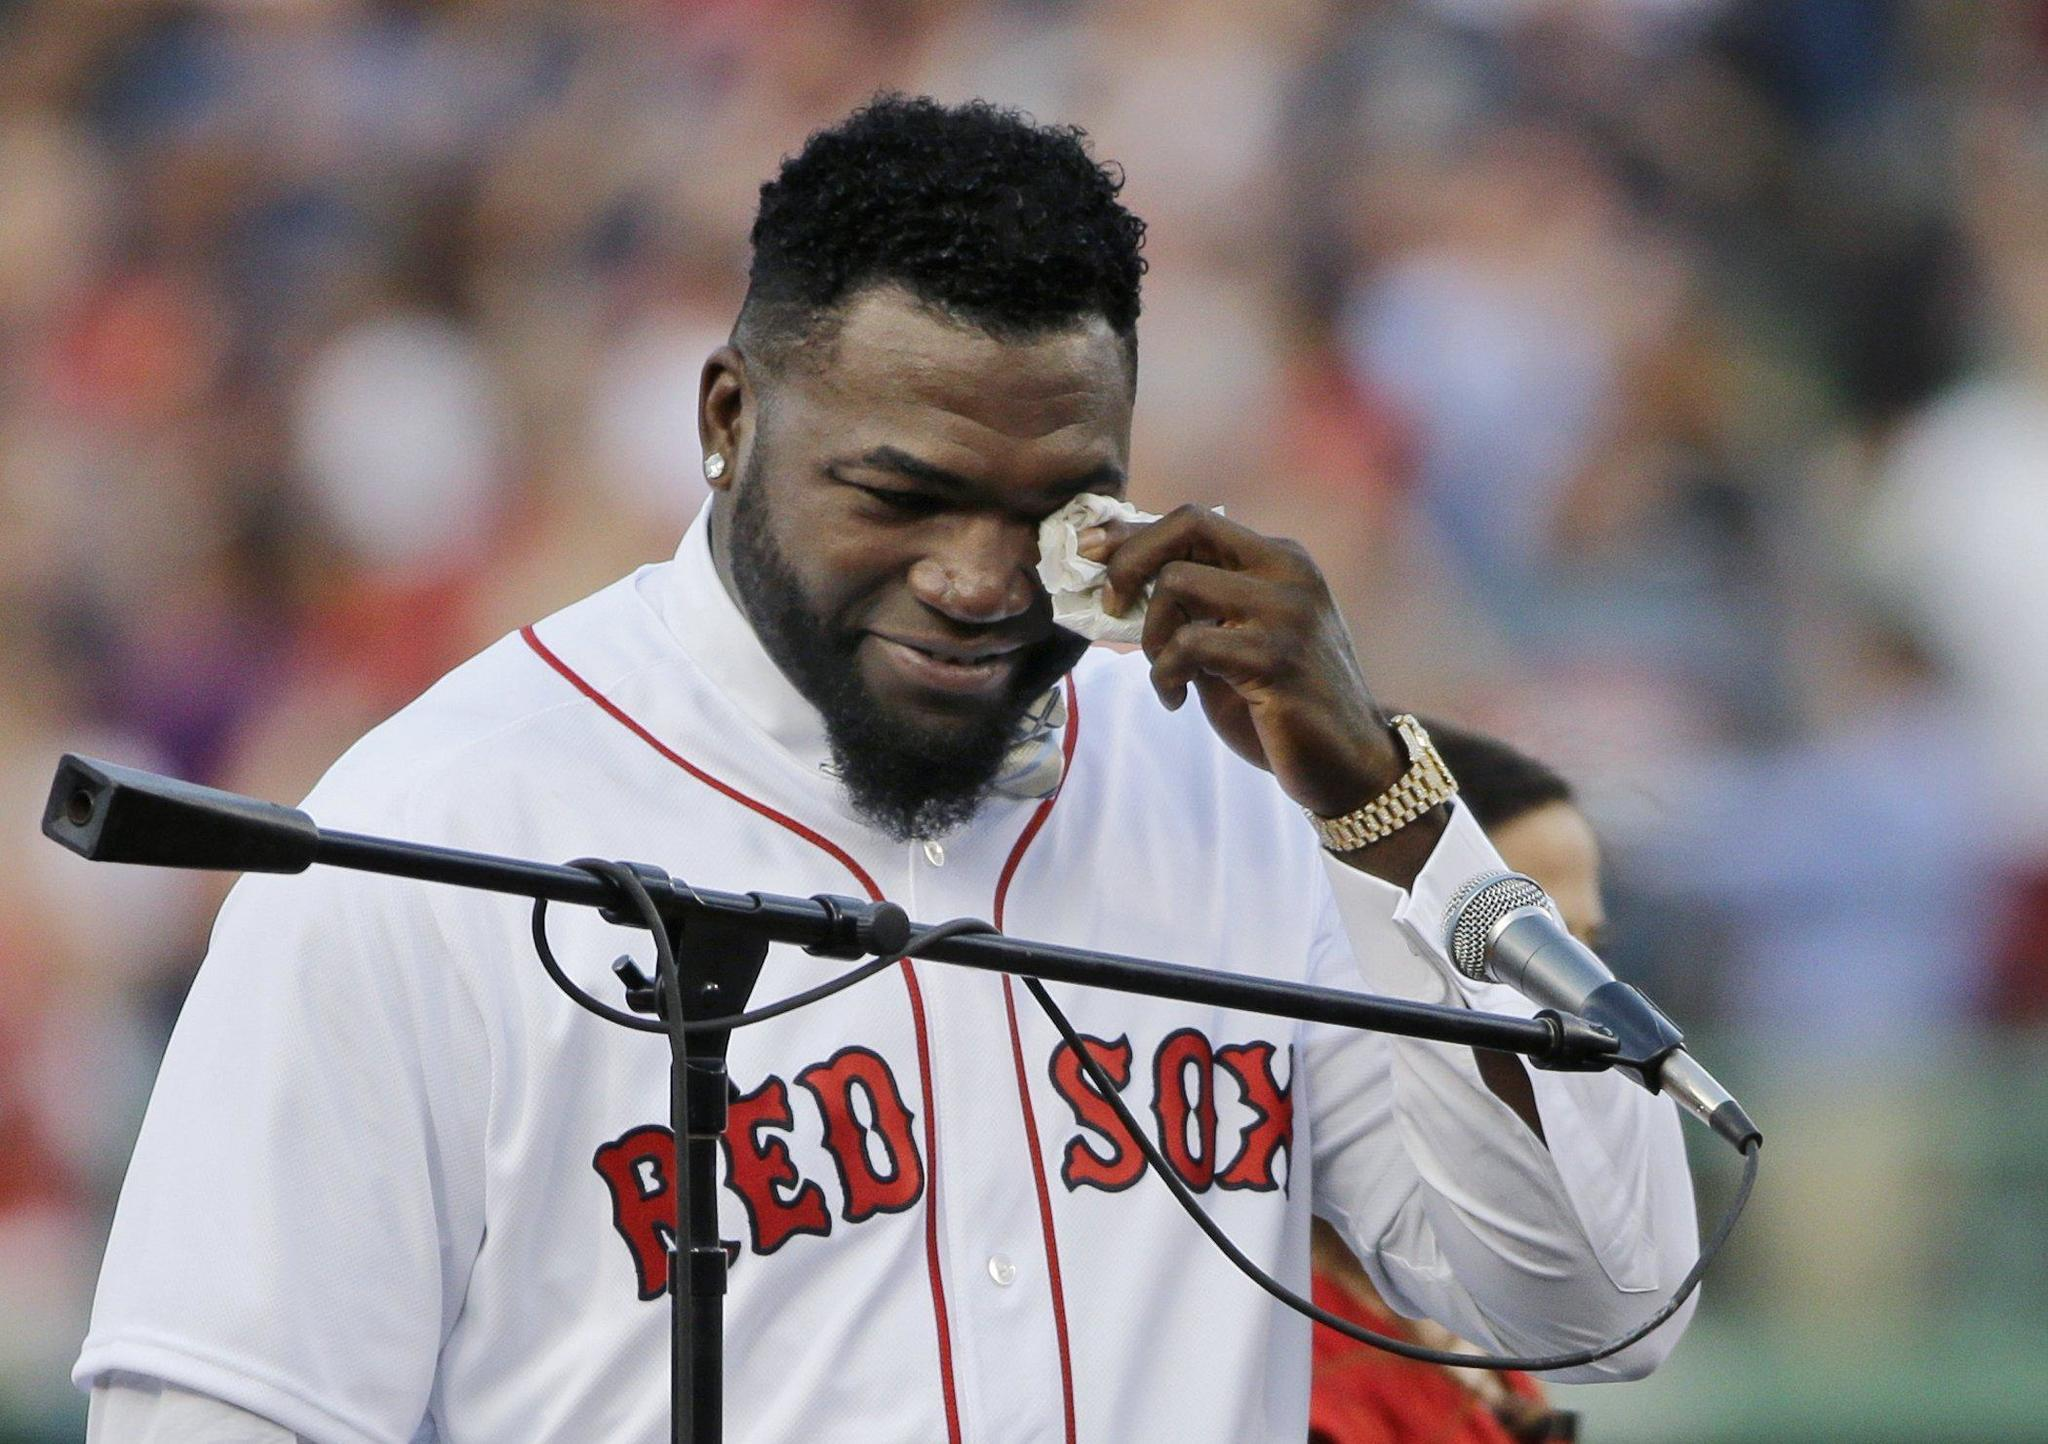 Red Sox Retire No 34 For Ortiz This Is His Pause City